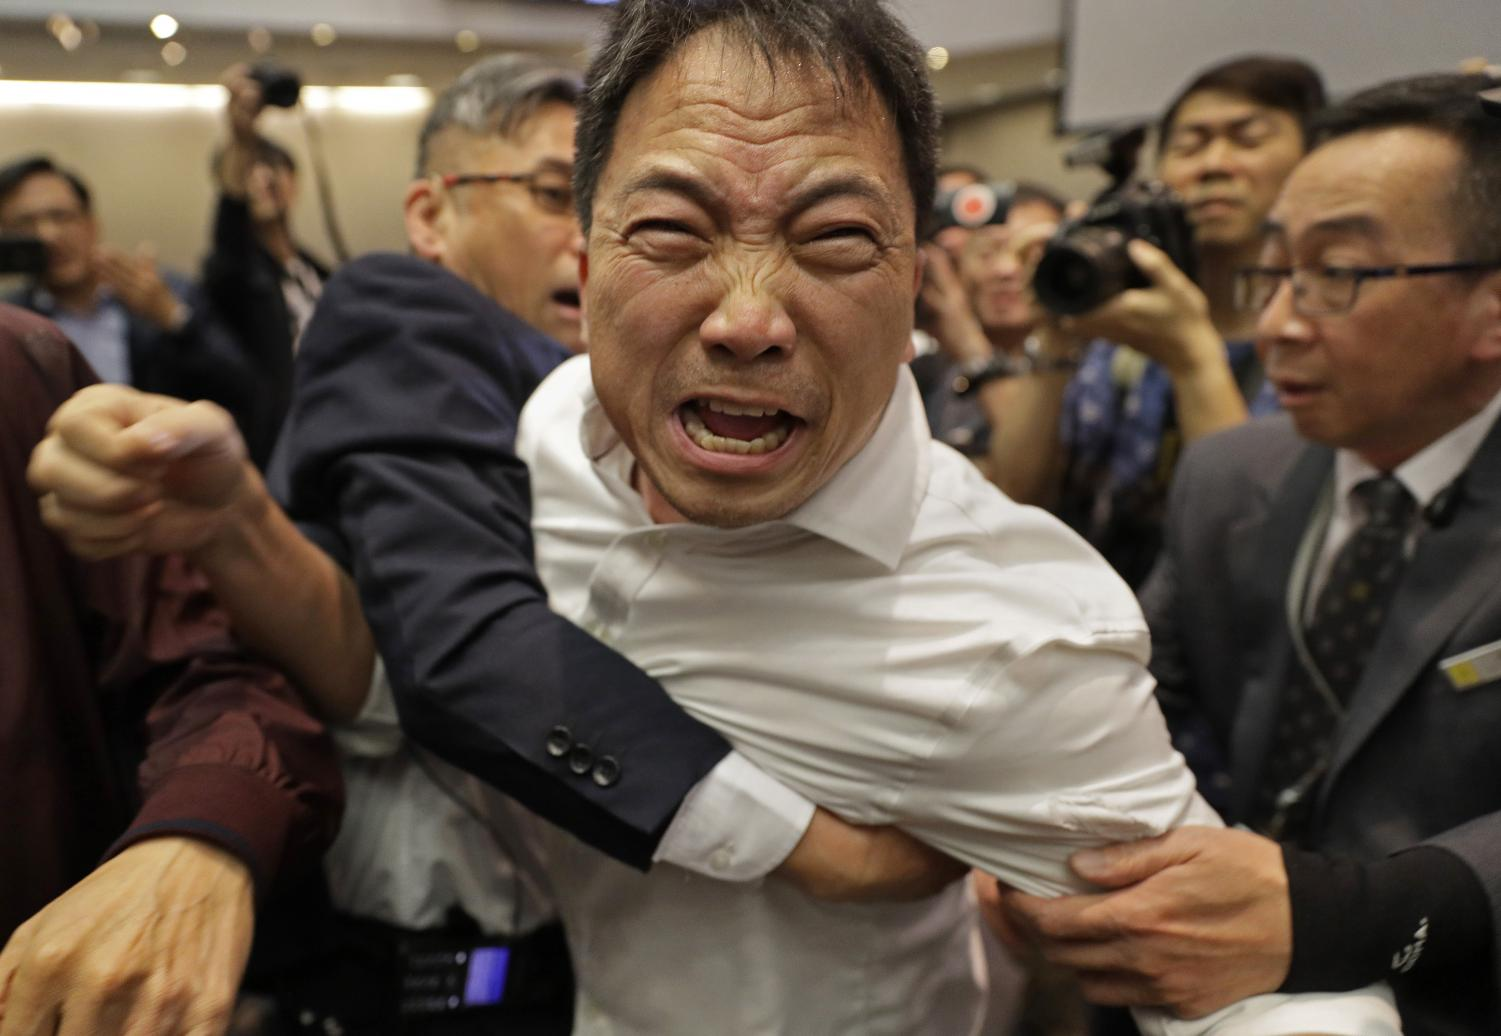 Pro-democracy lawmaker Wu Chi-wai is held by security guards at Legislative Council May 11.